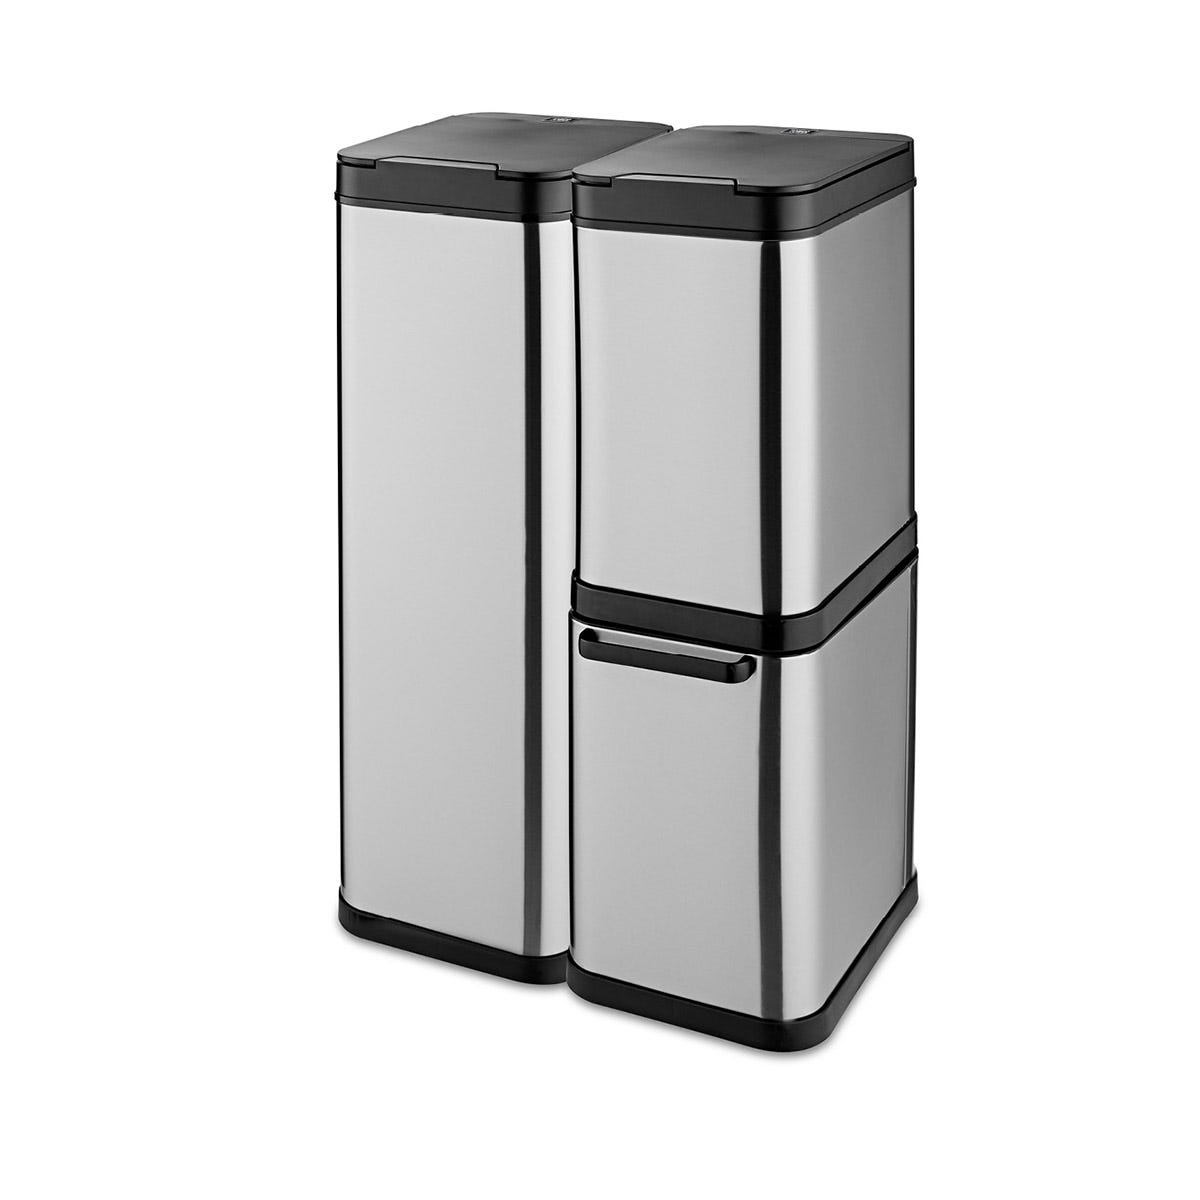 Tower 110L Stacked Sensor Recycling Bin - Stainless Steel